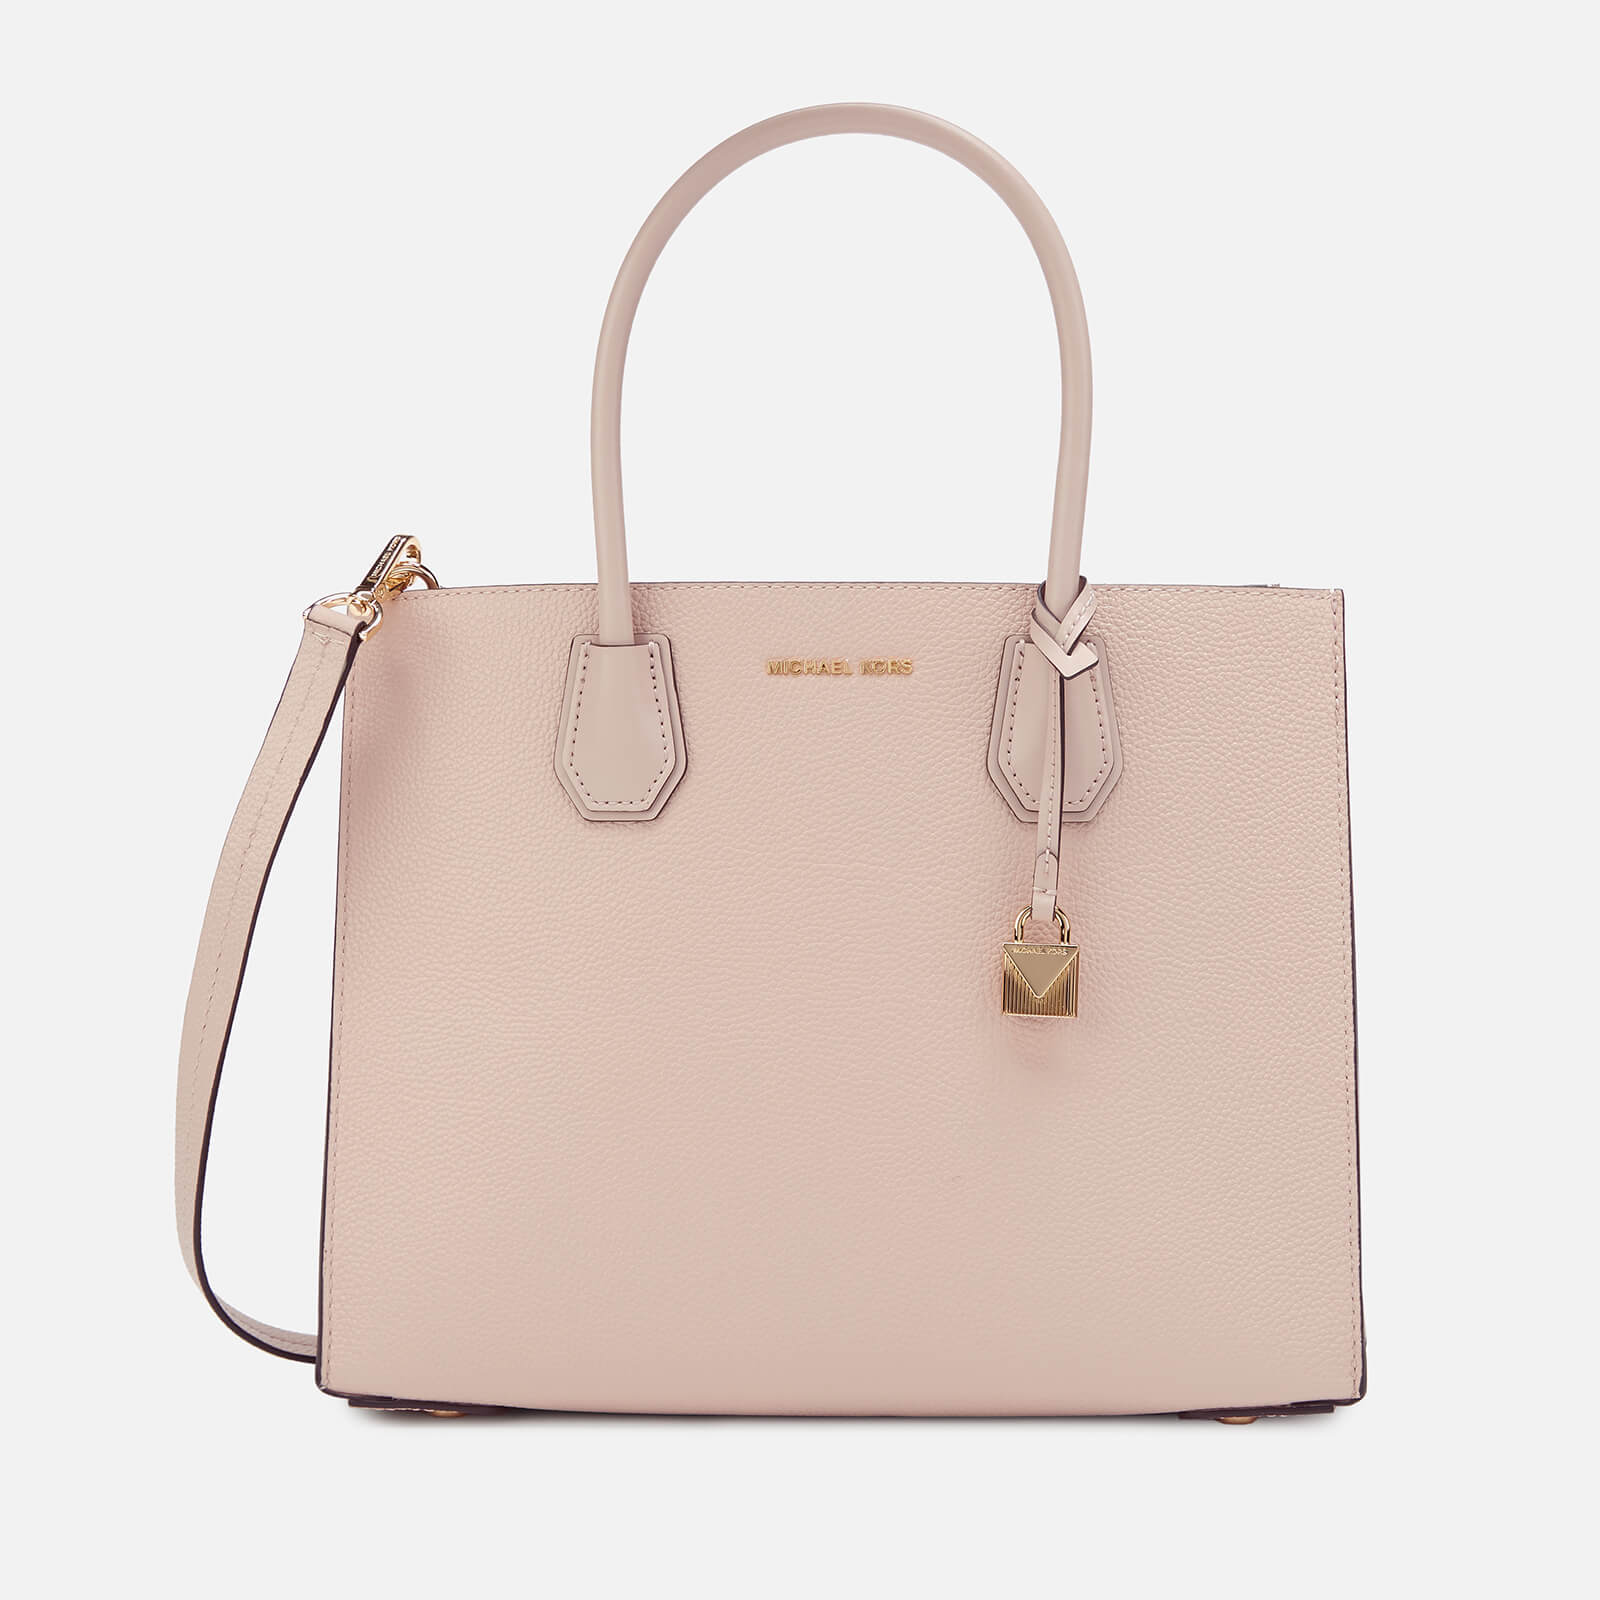 faebc682d9a9 MICHAEL MICHAEL KORS Women s Mercer Large Accordian Conversational Tote Bag  - Soft Pink - Free UK Delivery over £50